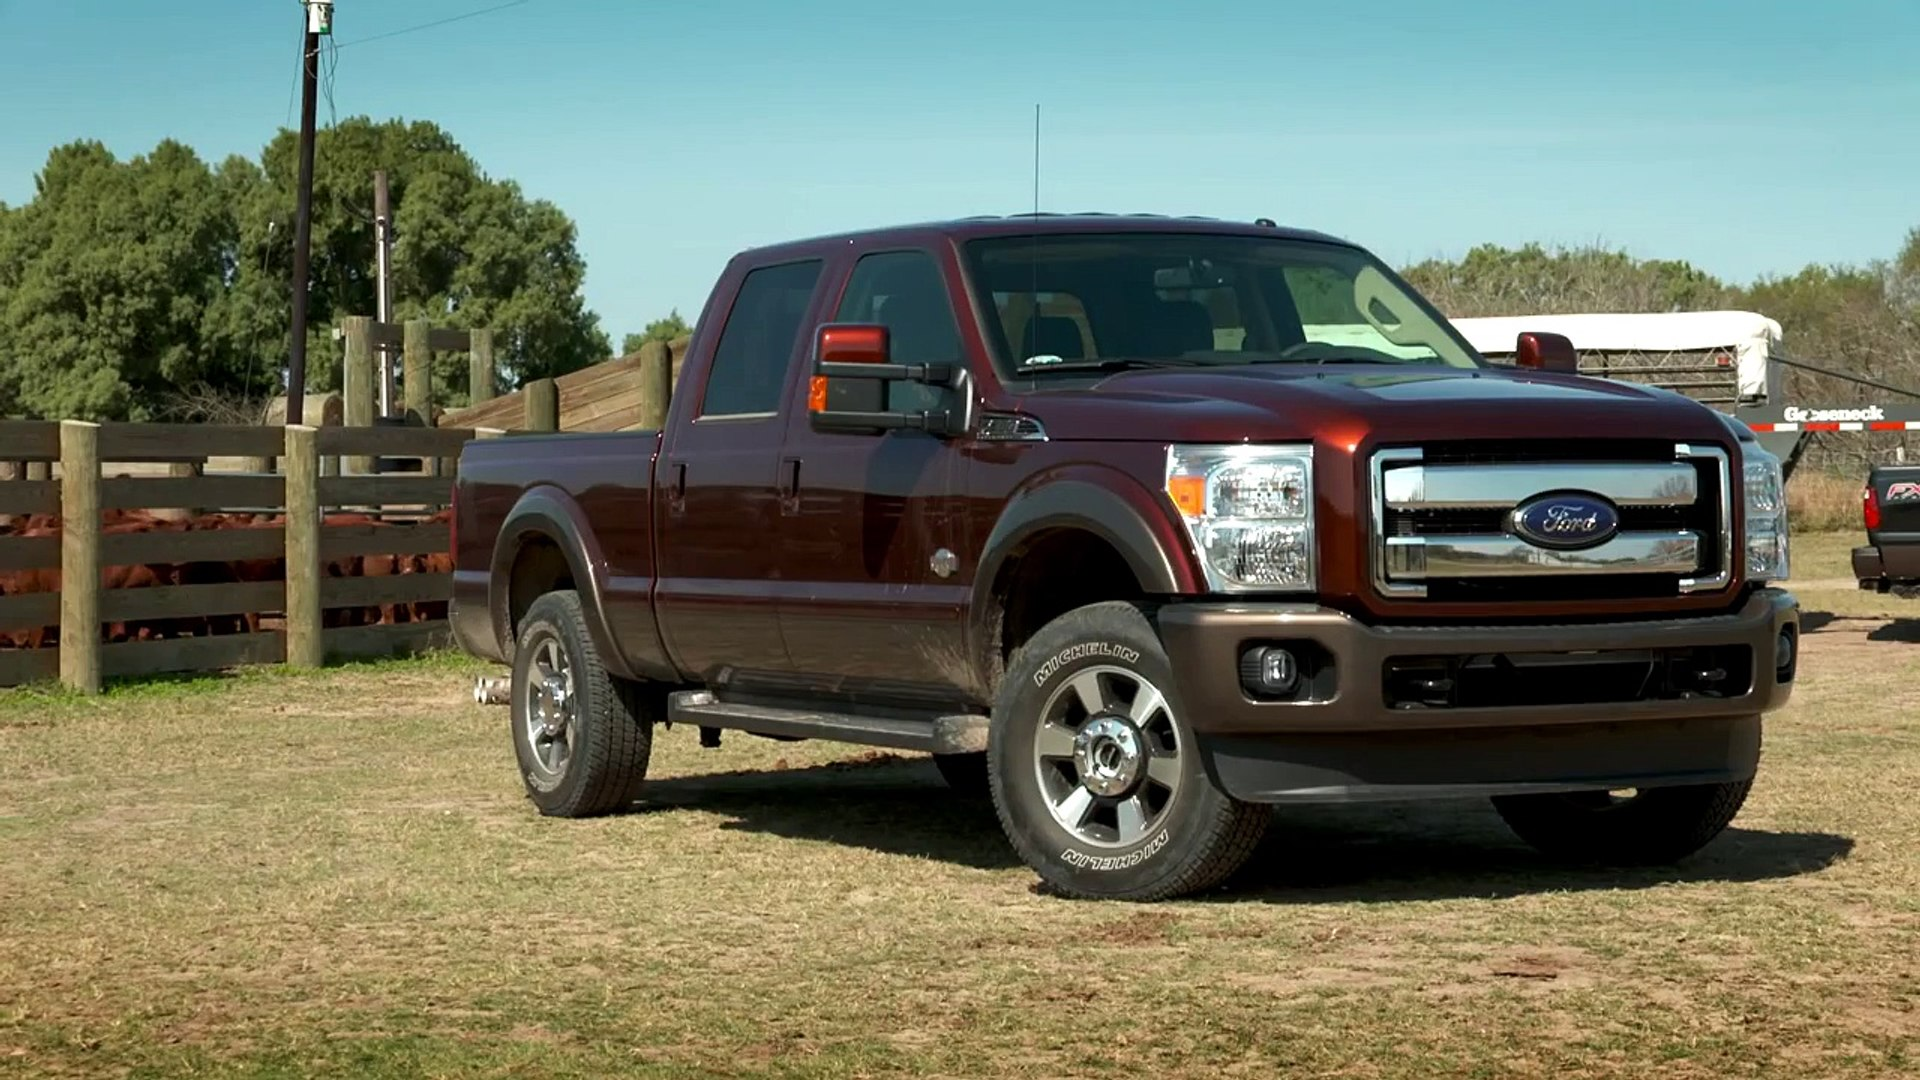 183.Ford and King Ranch - The Relationship